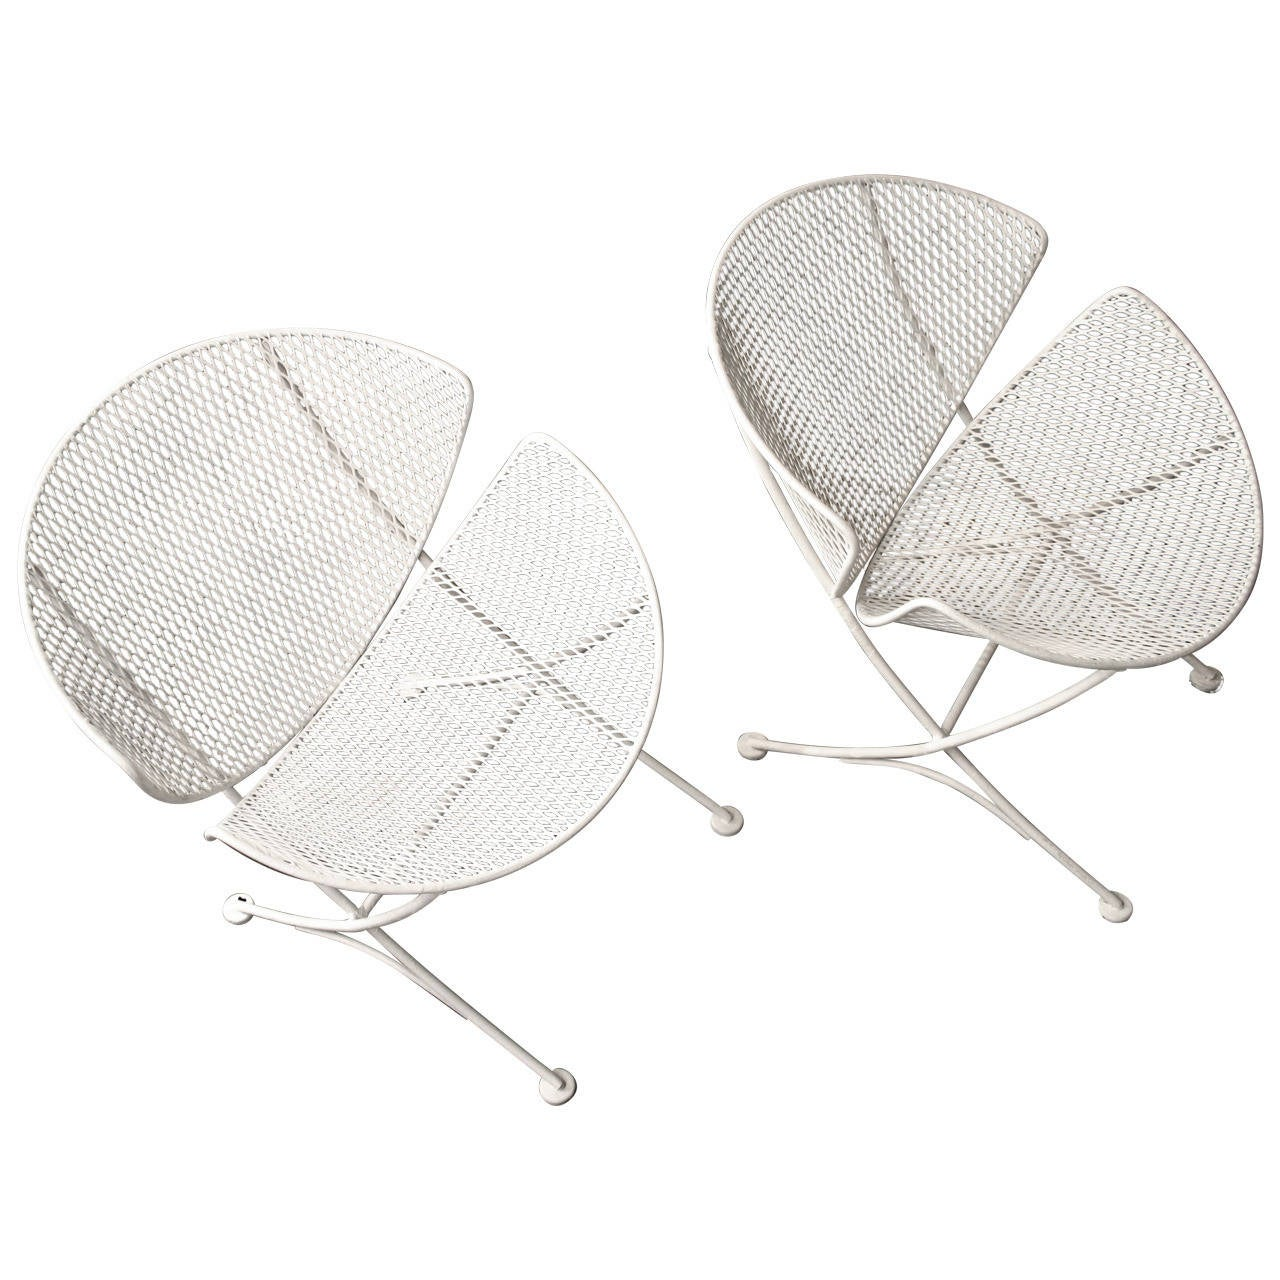 Mesh patio chairs in the style of salterini circa 1950 at for Mesh patio chairs